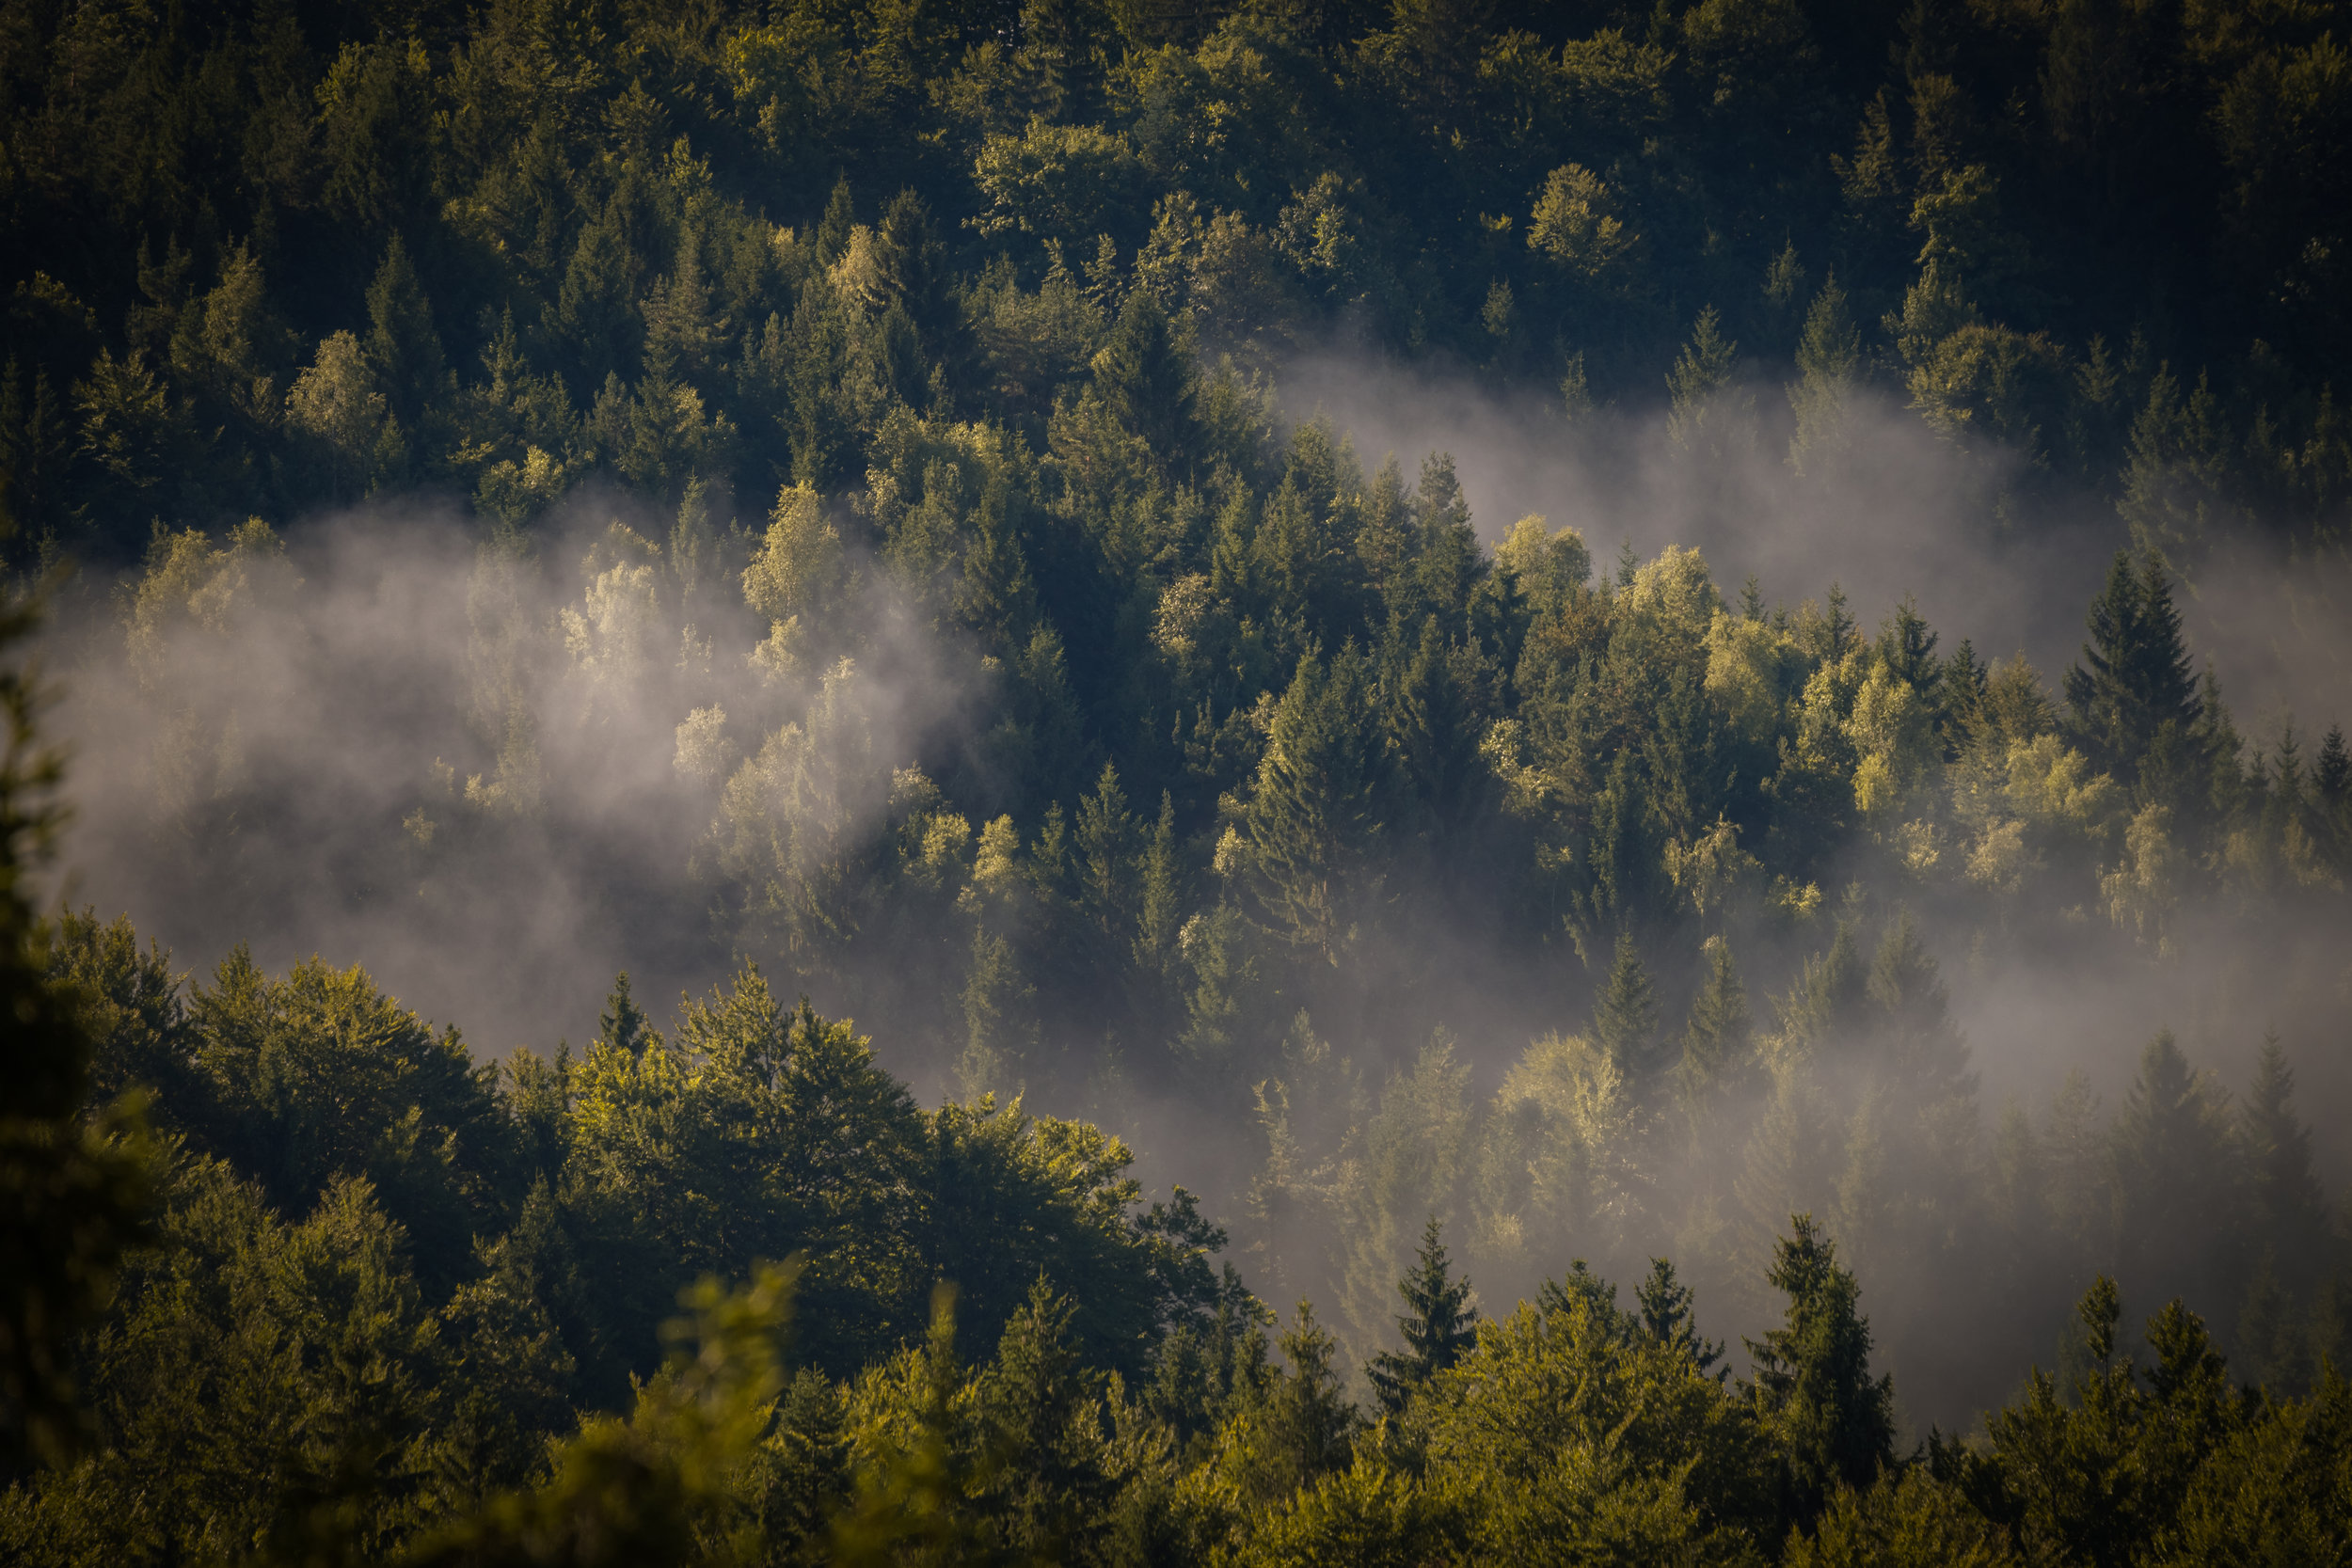 fog-cover-the-forest-PYZCEEV.JPG